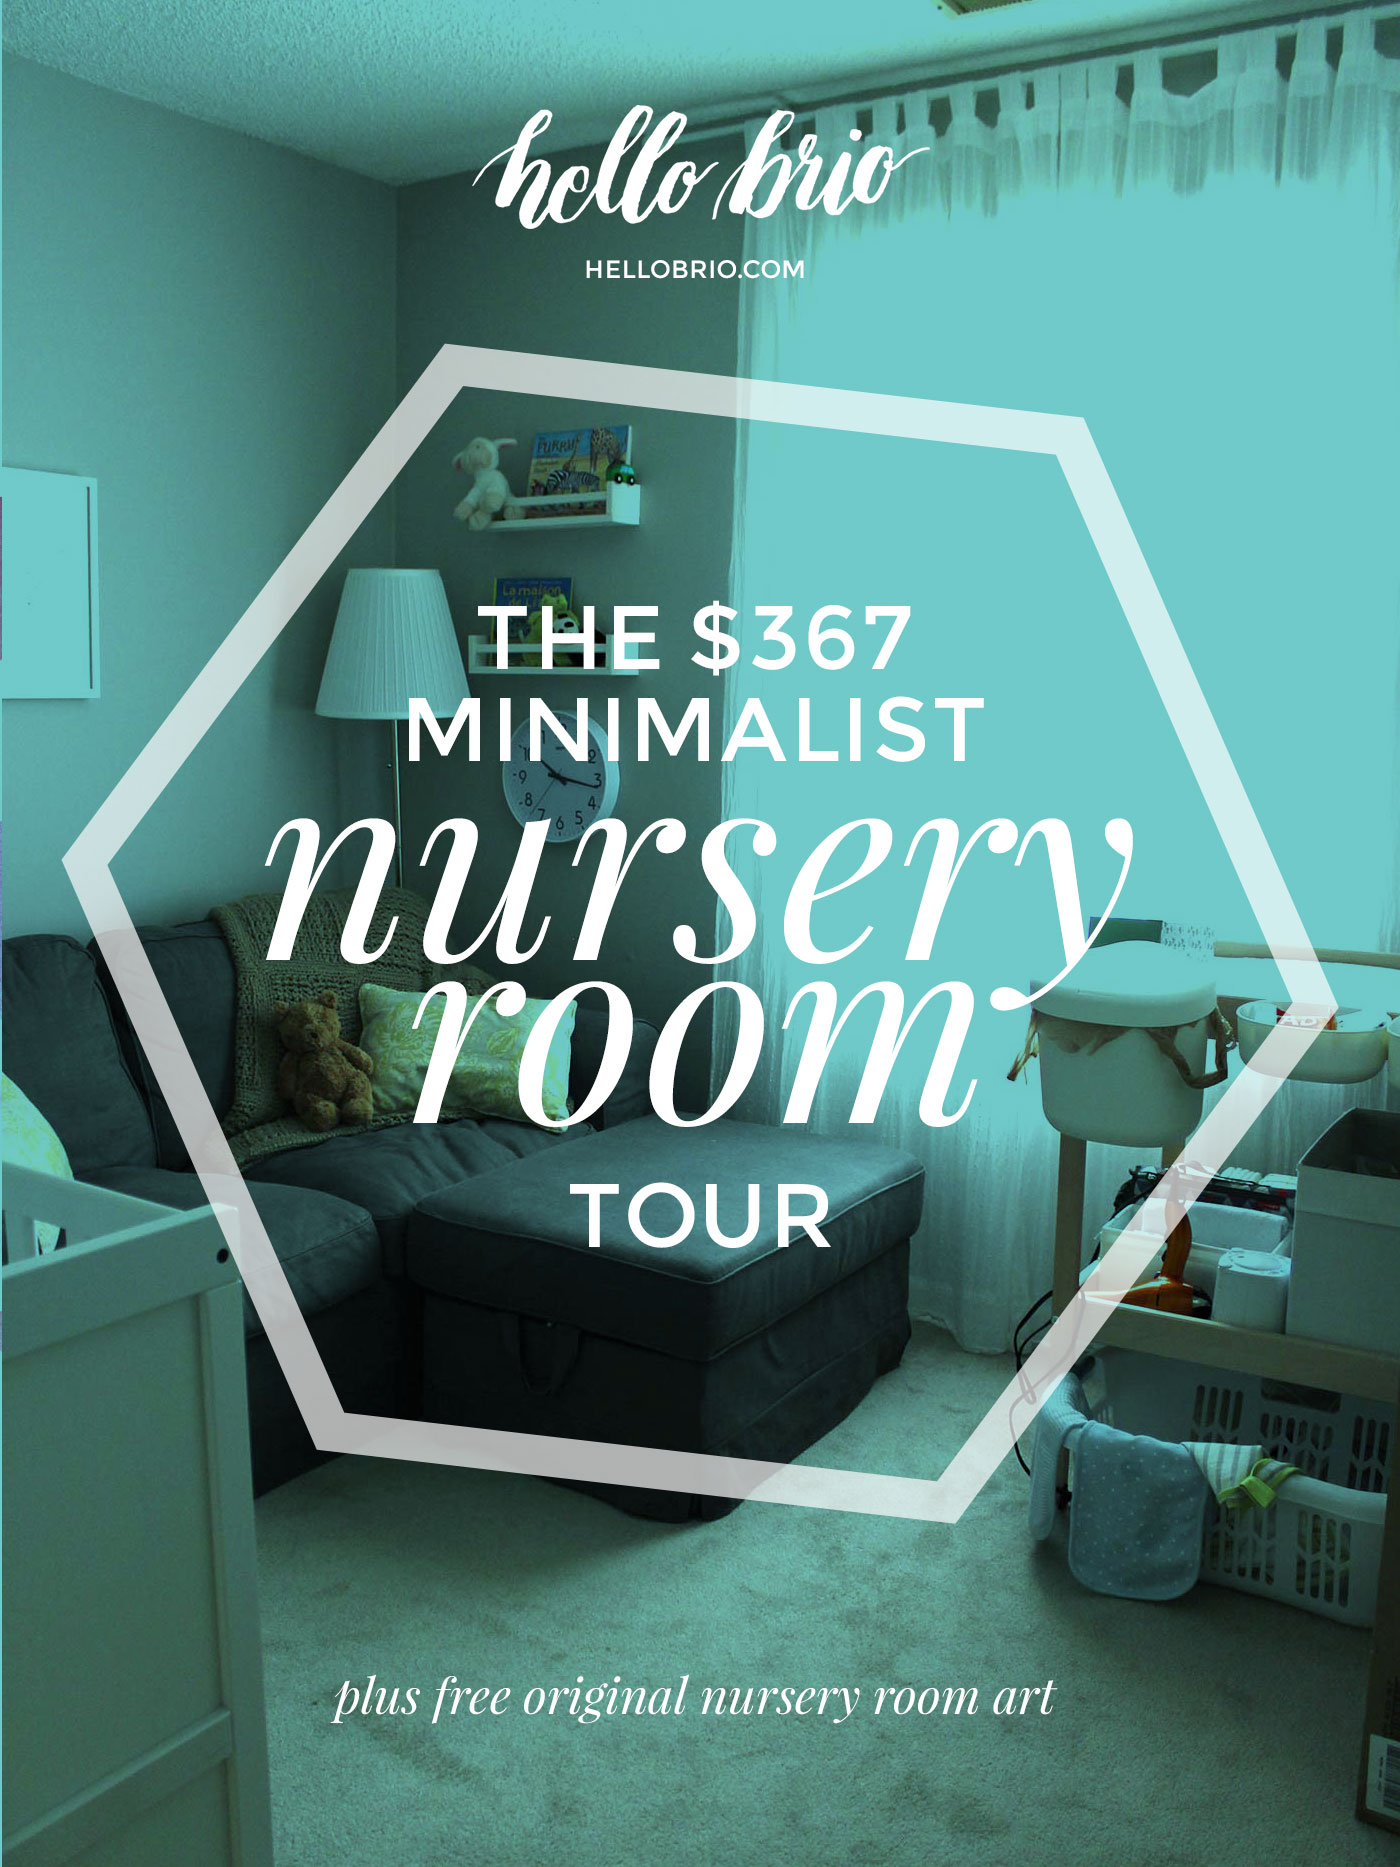 The $367 minimalist nursery room tour and breakdown of everything we needed to get set up for our first baby